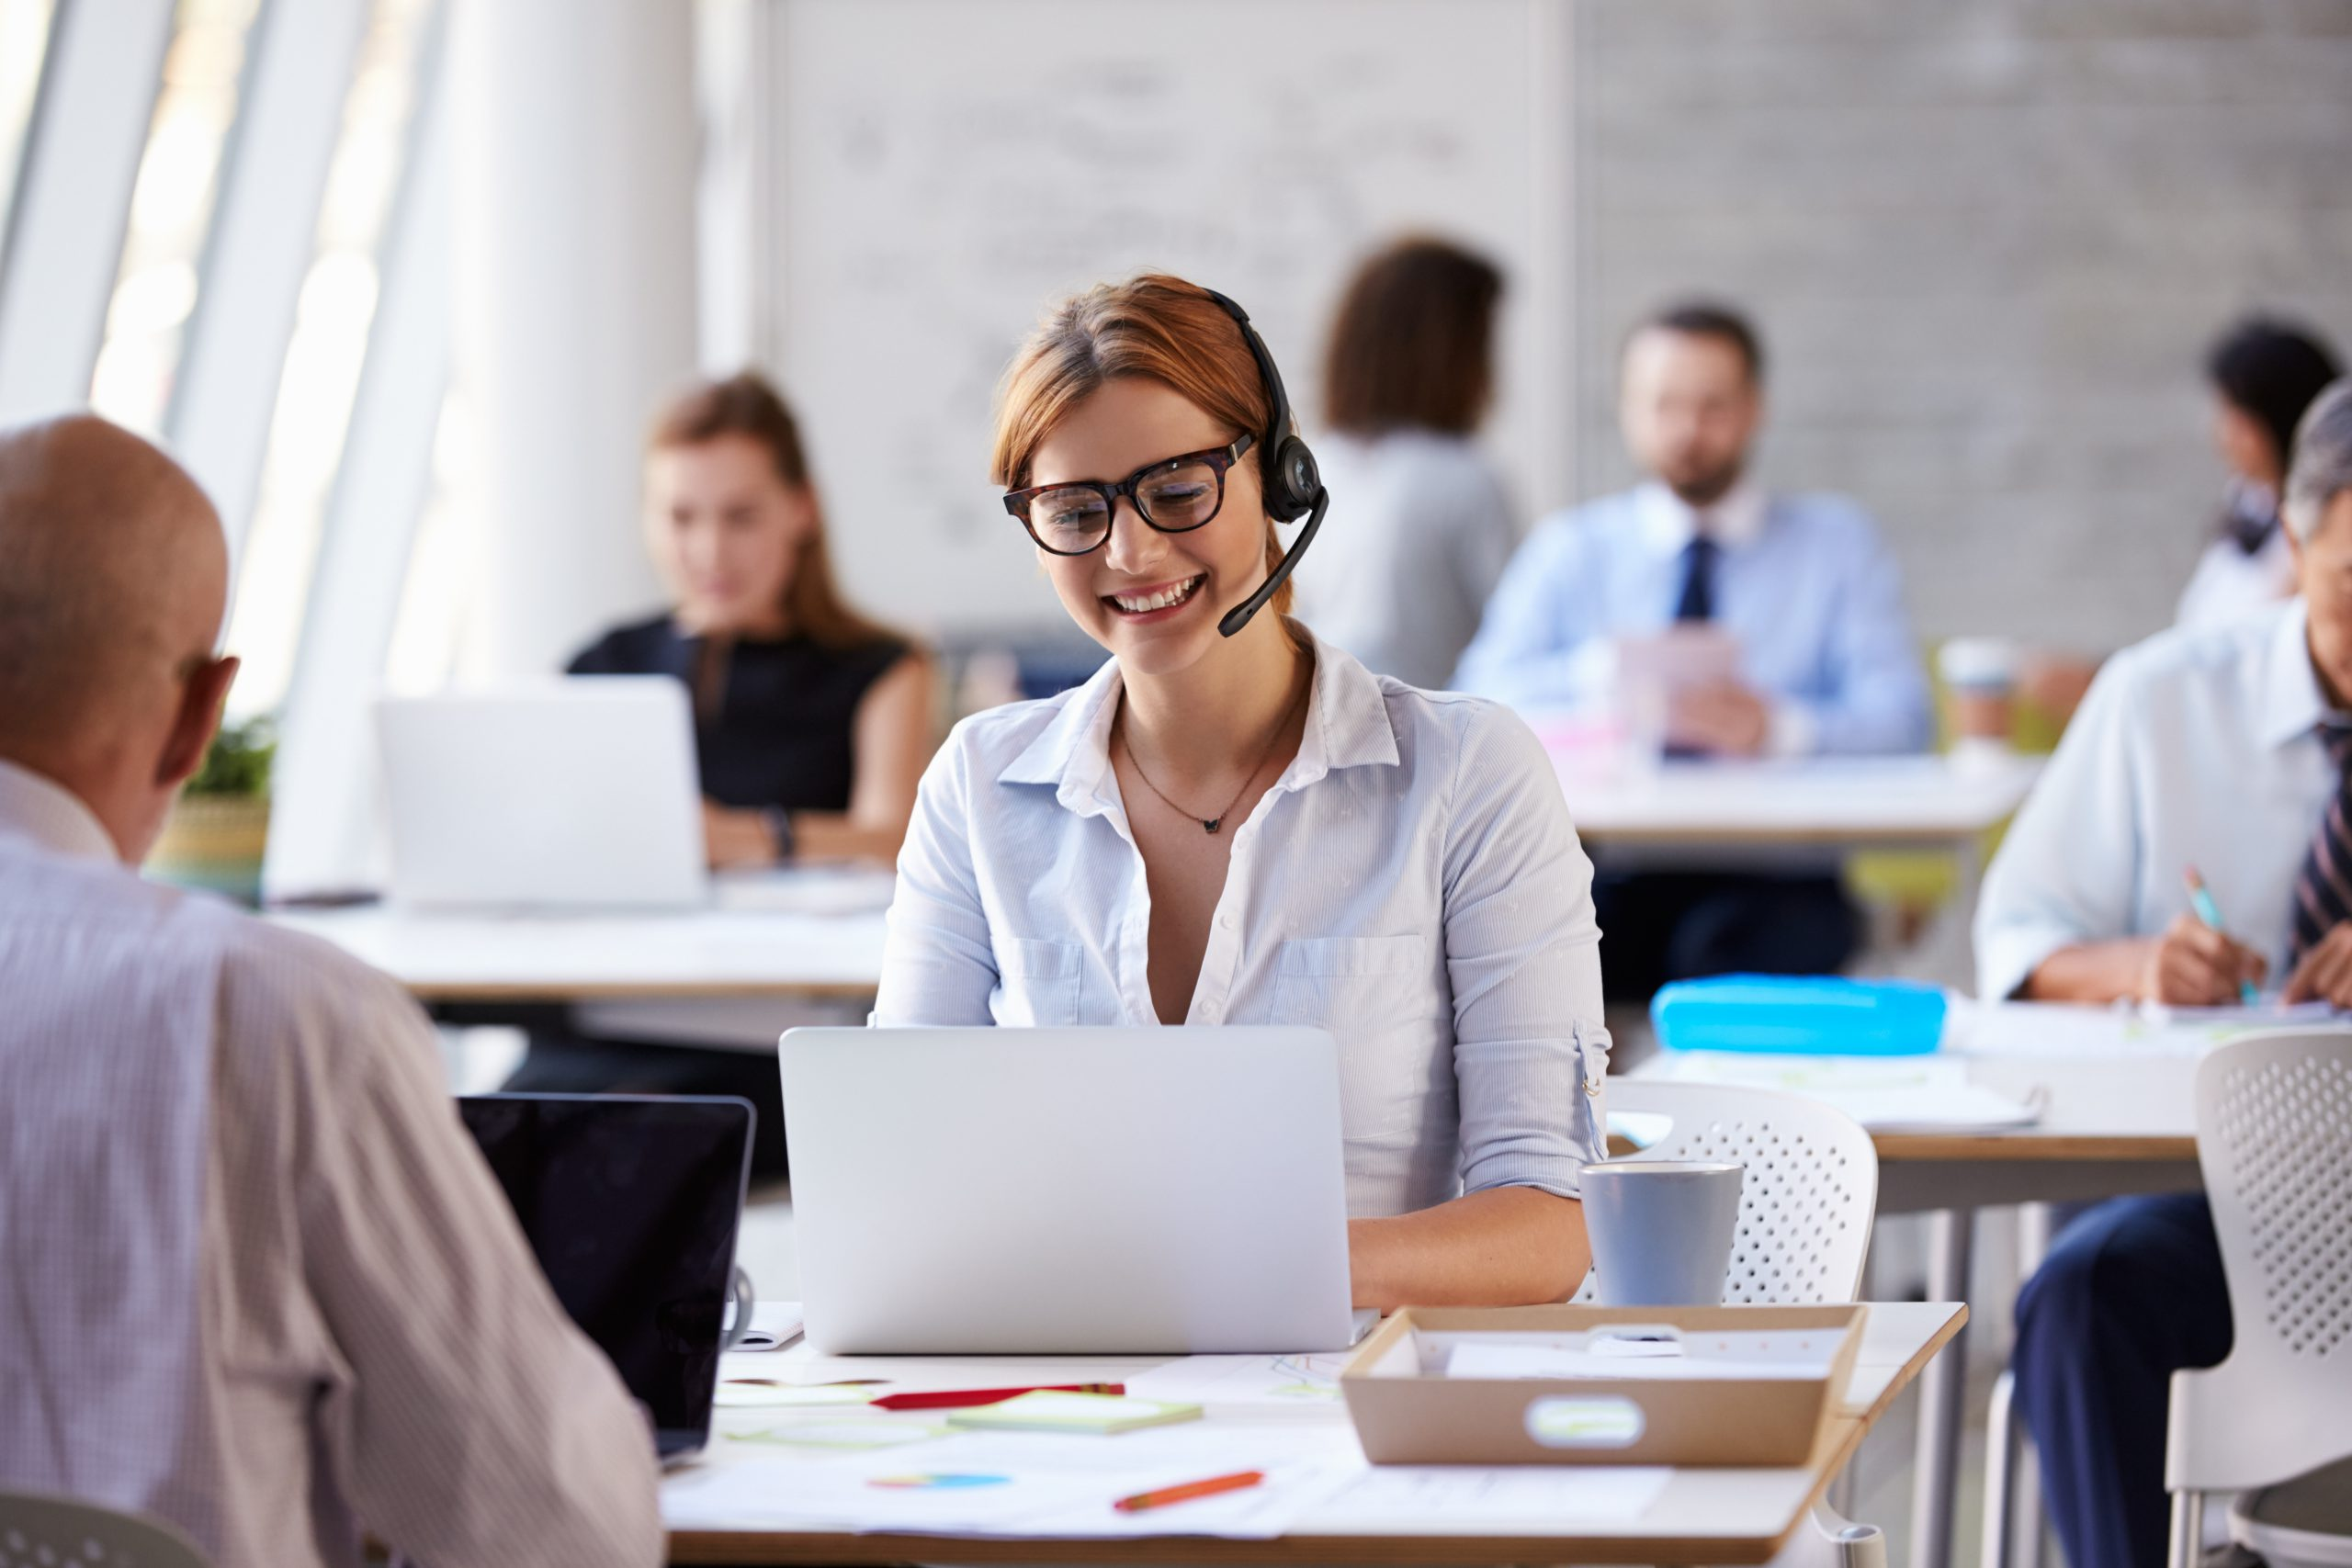 Contact Center & Call Center Automation: How to Improve Customer Experience